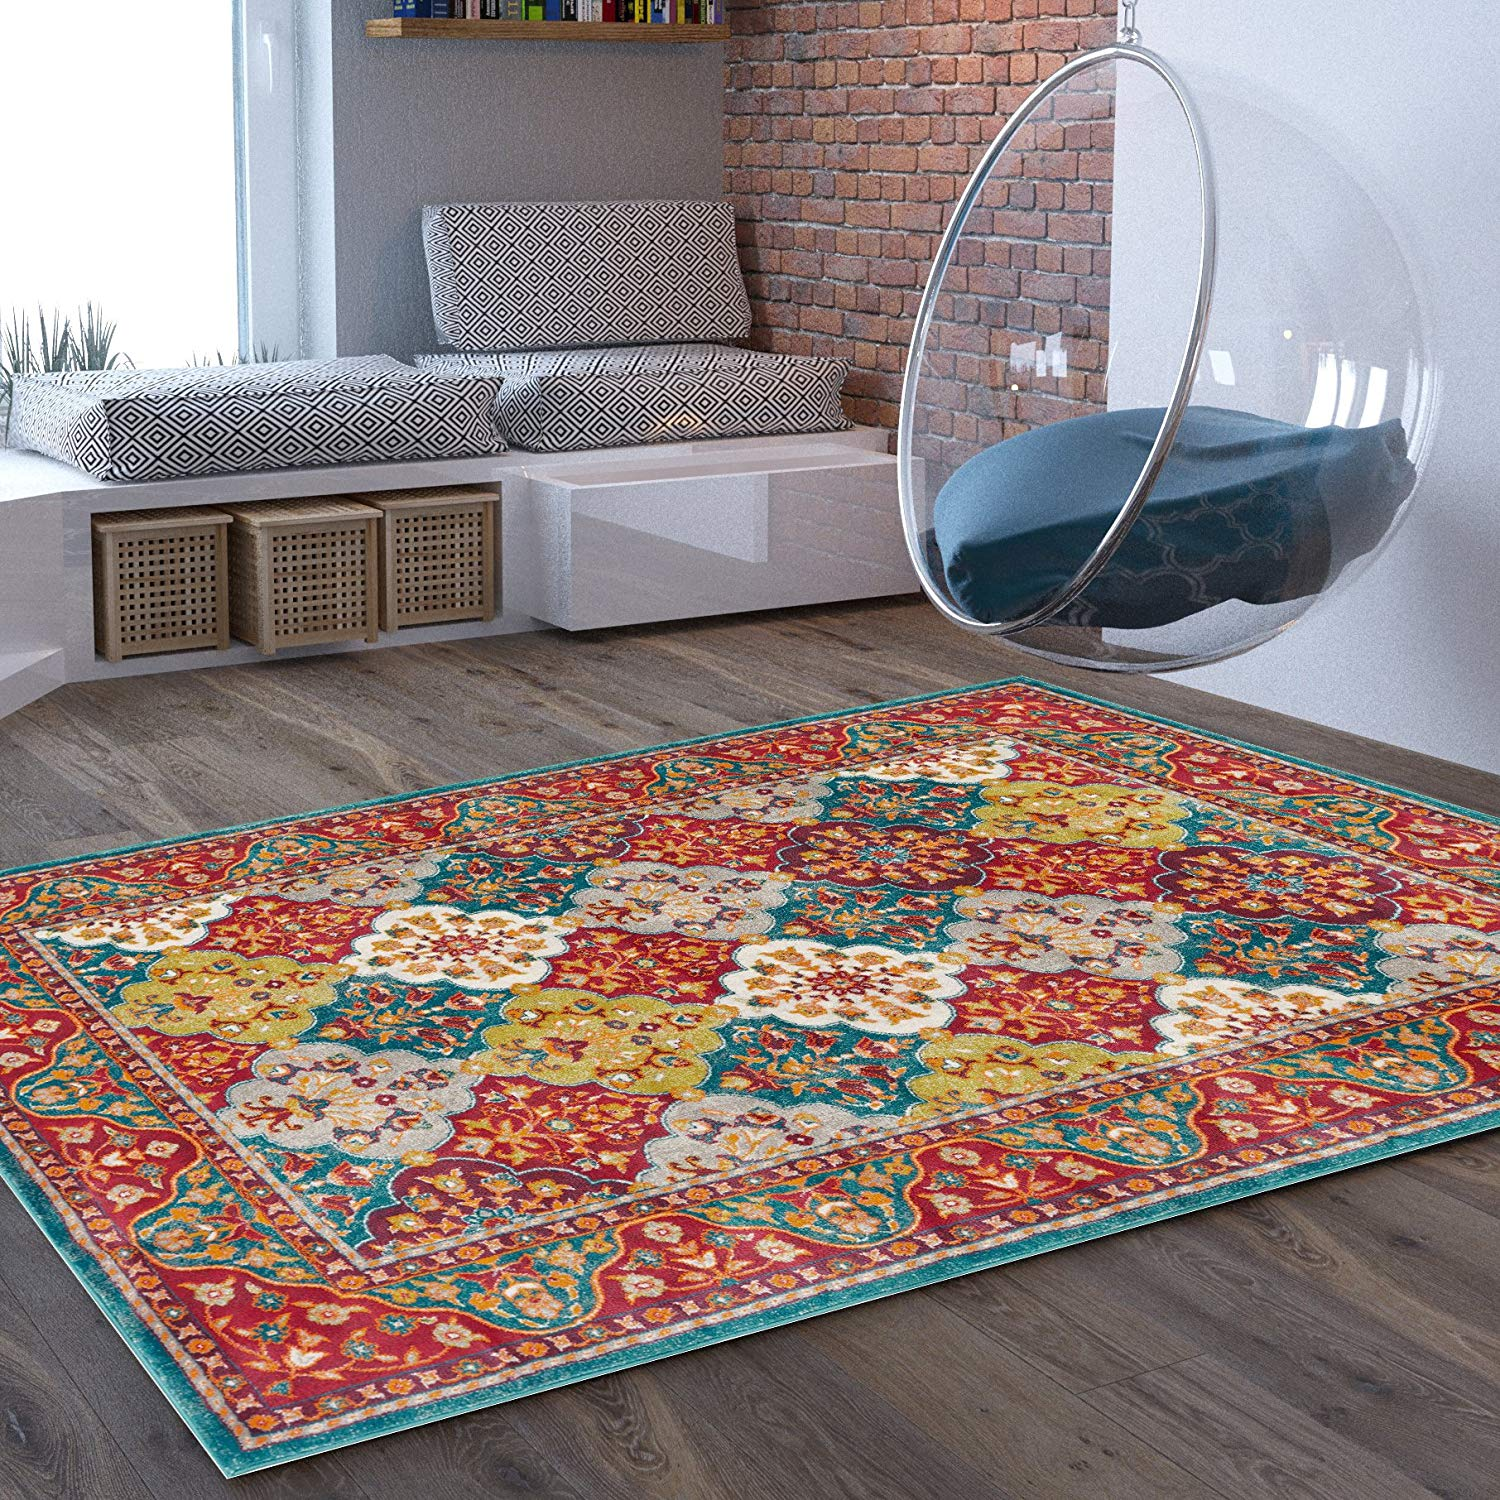 Cheap 7 X 11 Area Rug Find 7 X 11 Area Rug Deals On Line At Alibaba Com